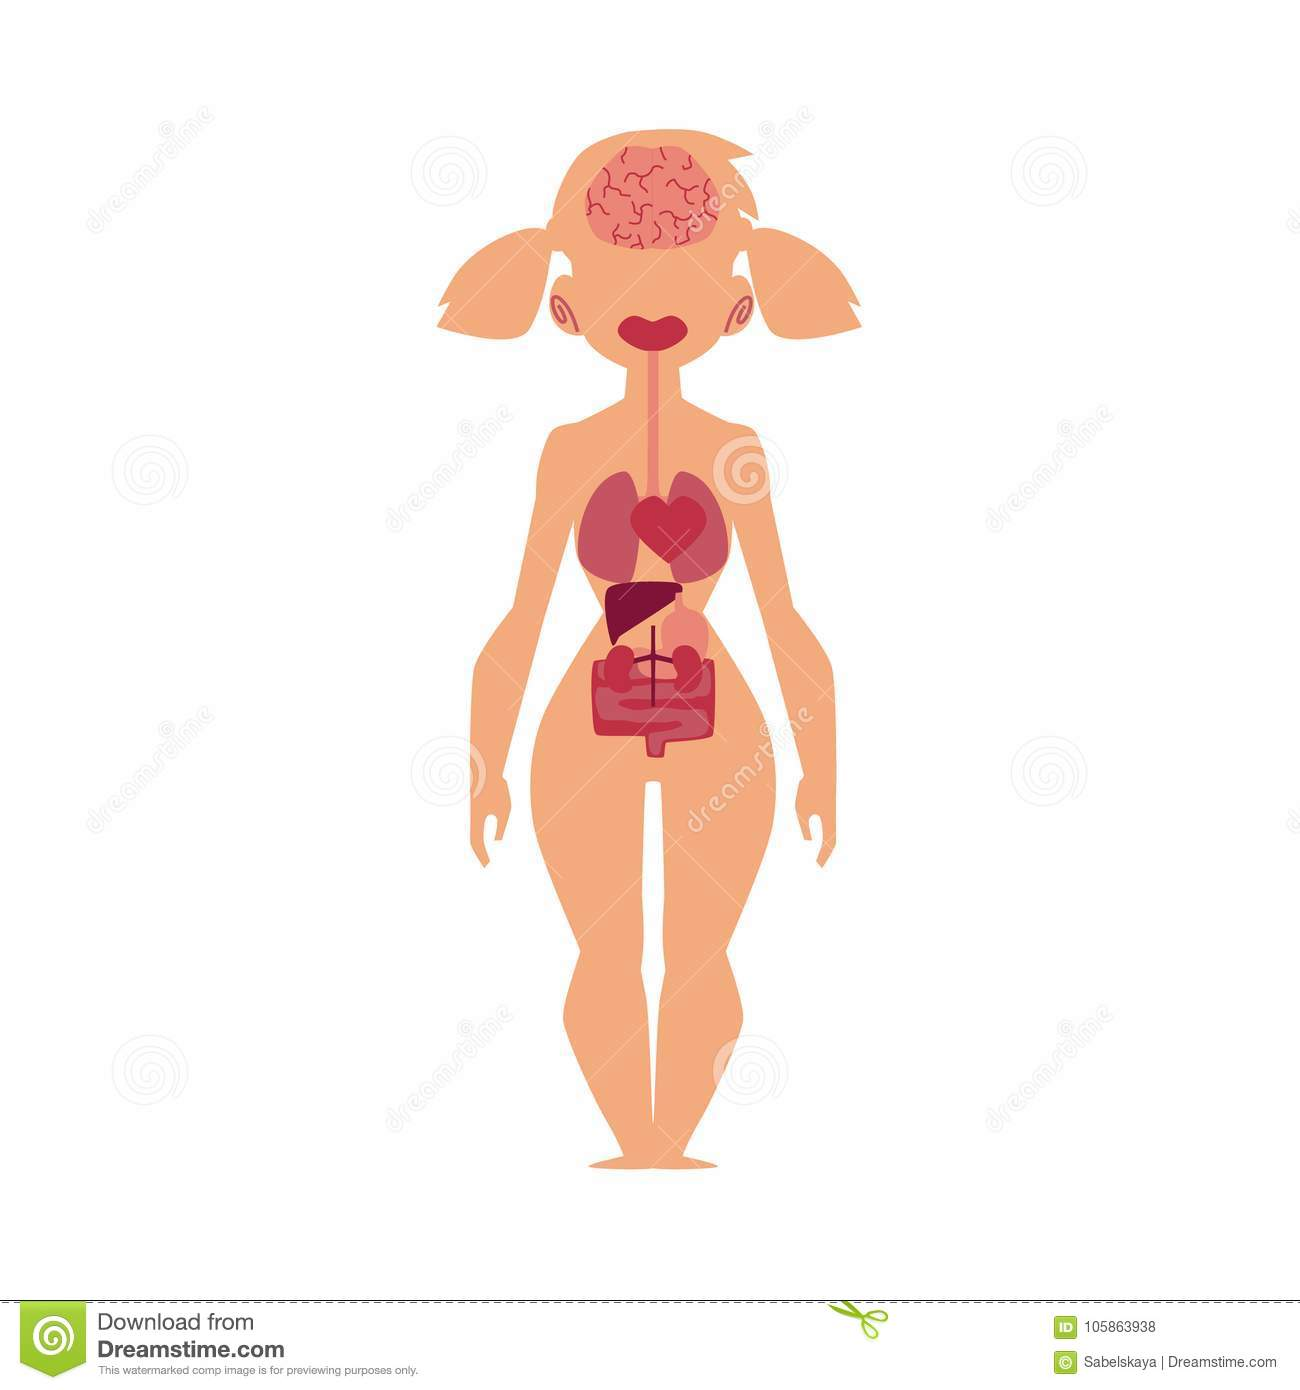 Anatomy Chart Human Internal Organs Female Body Stock Vector